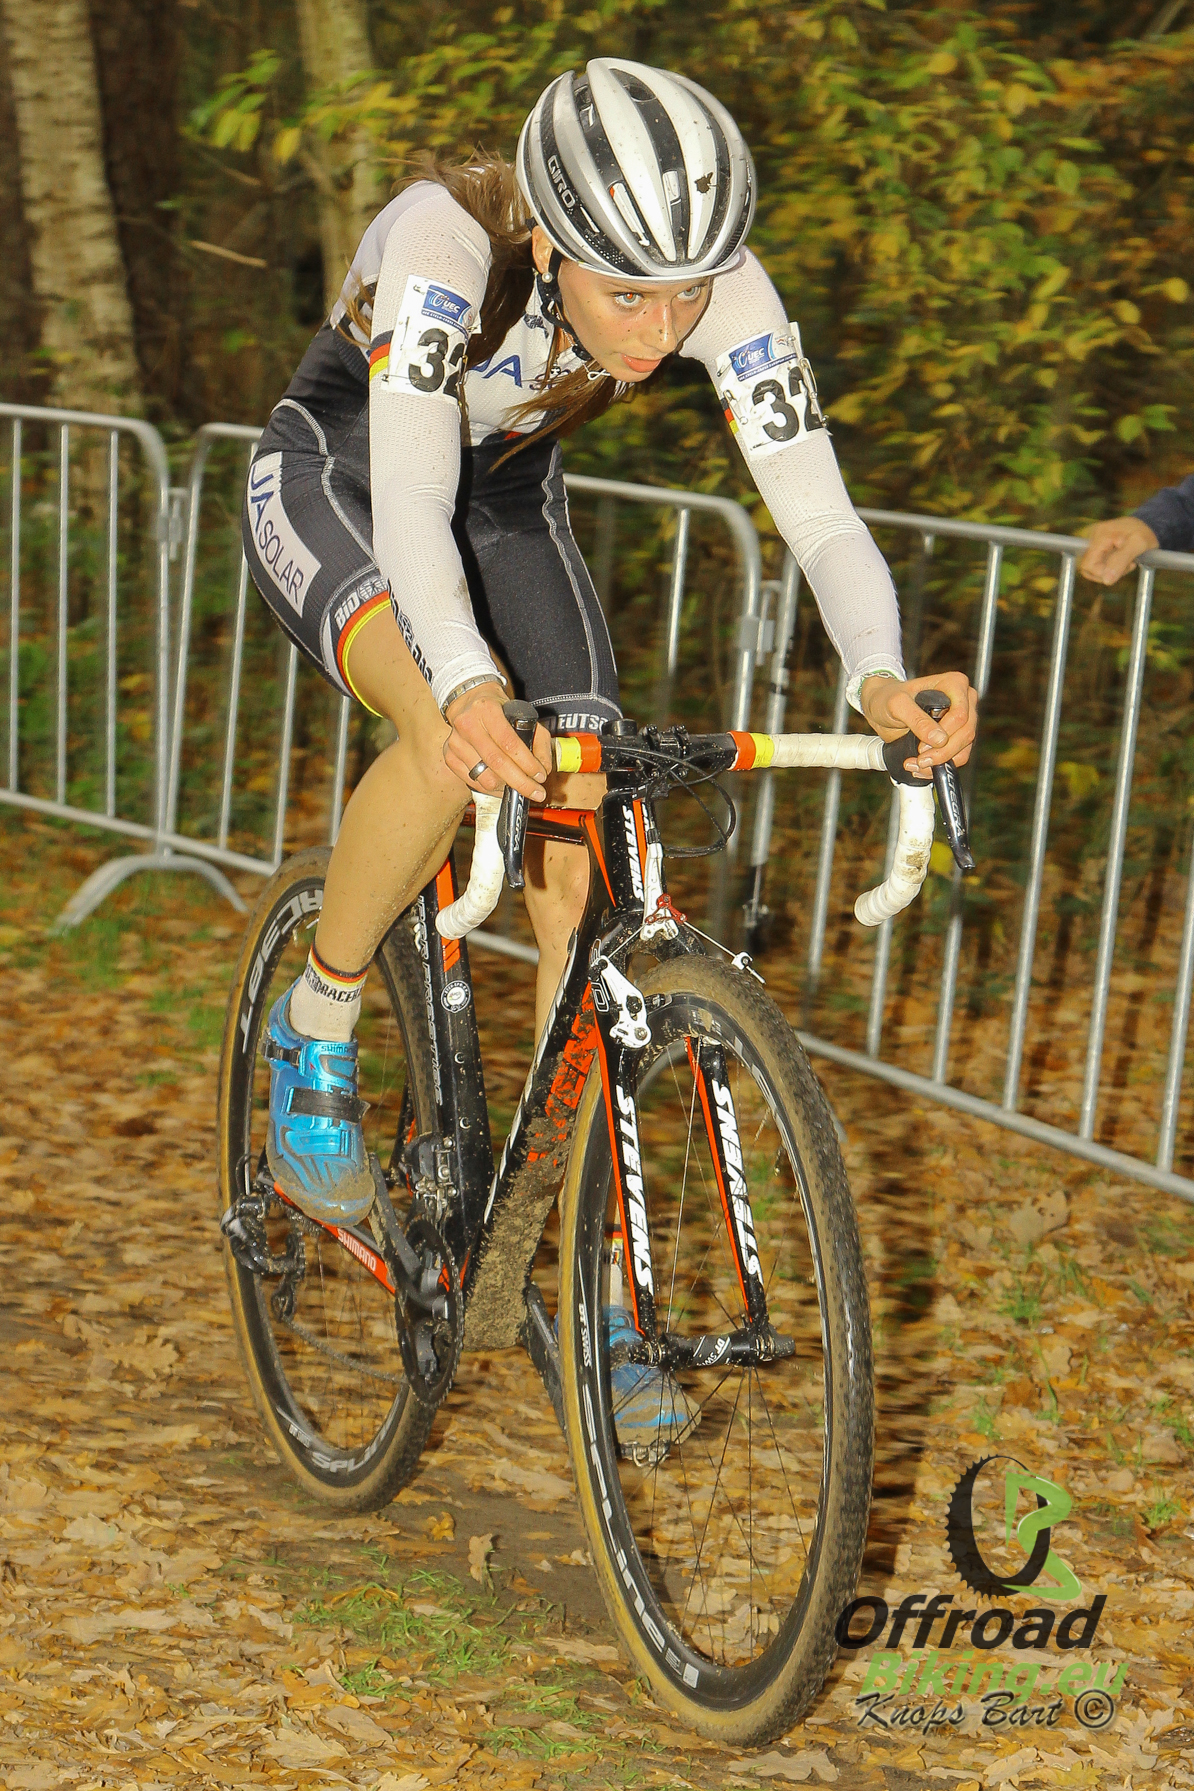 German champion Jessica Lambracht 5 th at EK Huijbergen